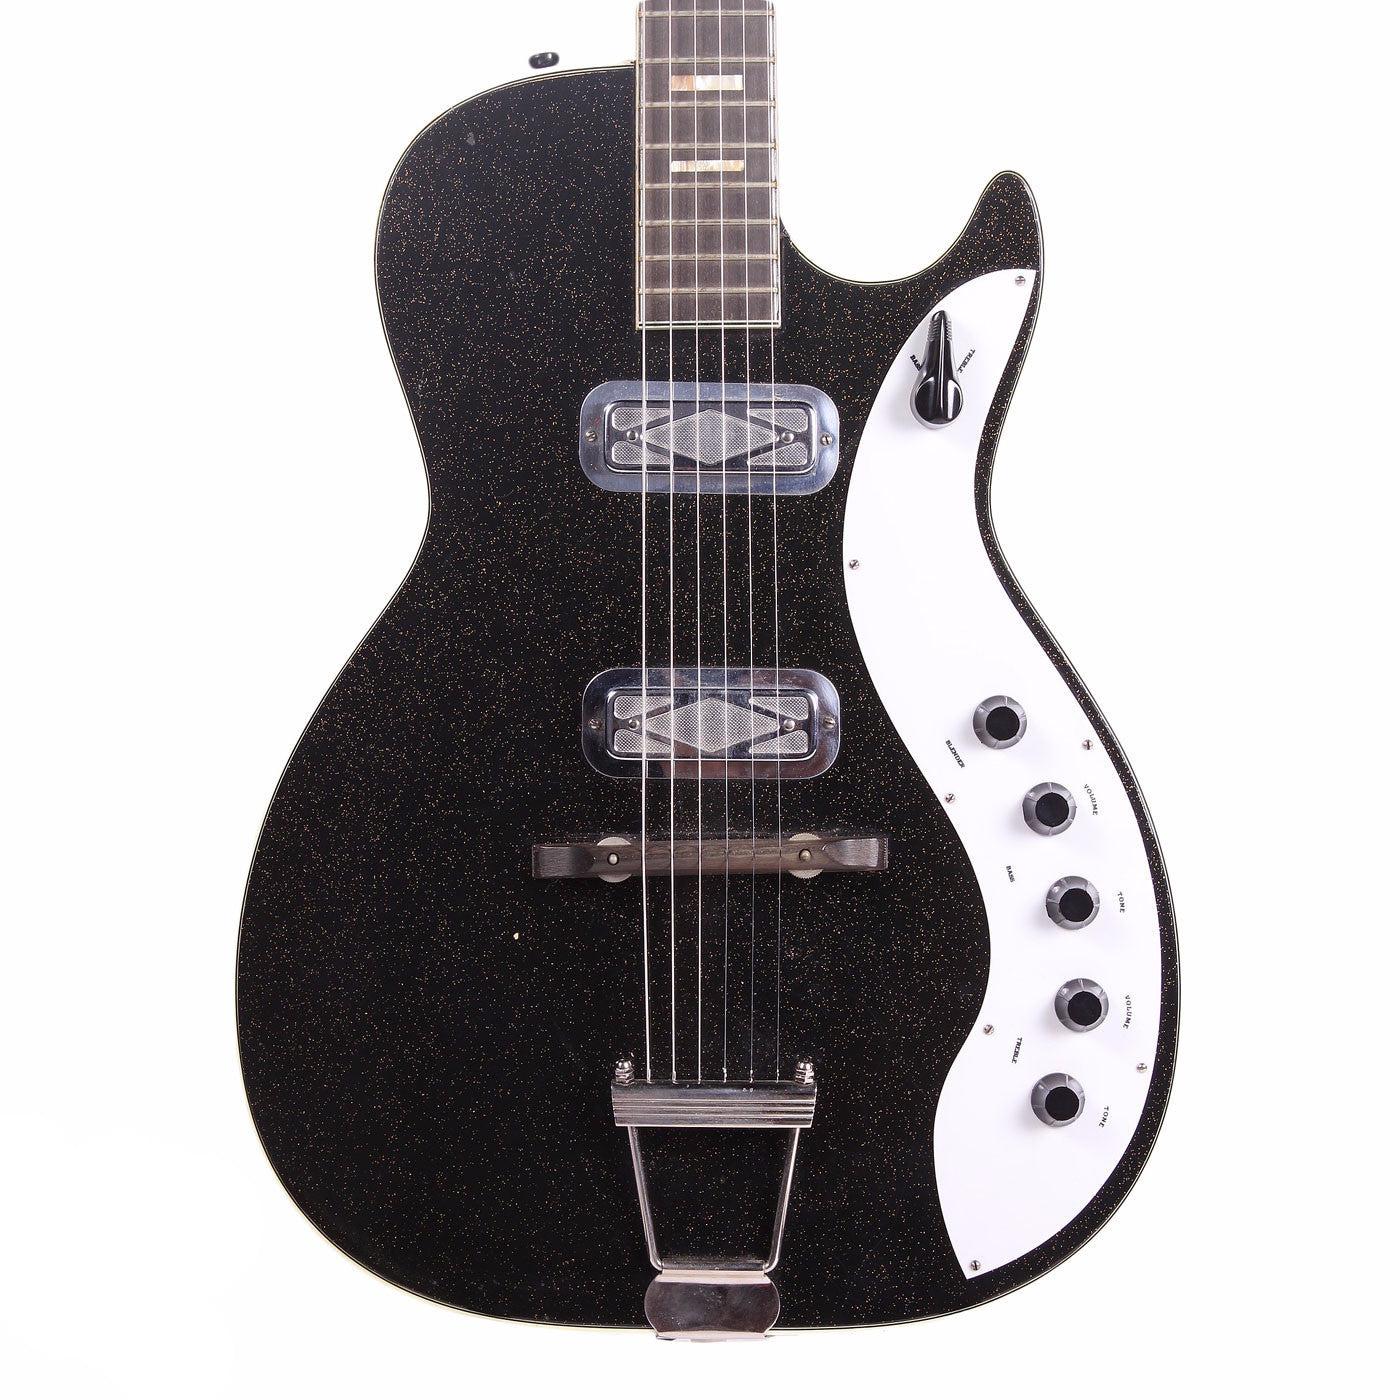 1960s Silvertone Jupiter - Black Sparkle - Vintage Guitar Boutique